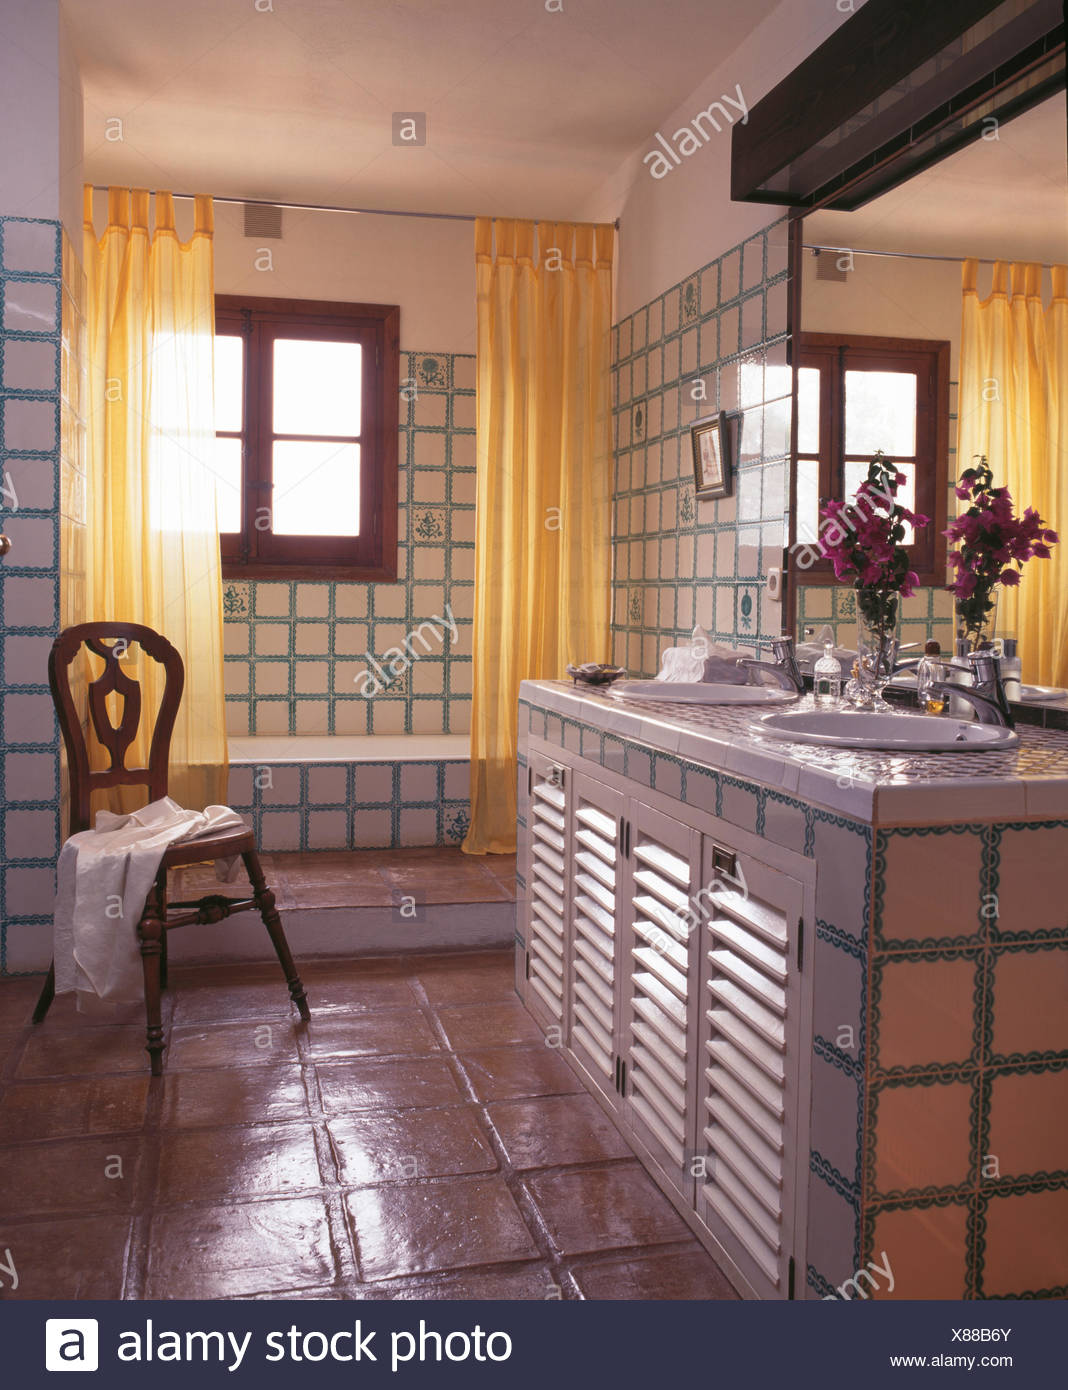 Yellow Shower Curtains On Bath In Tiled Spanish Country Bathroom With A Terracotta Floor